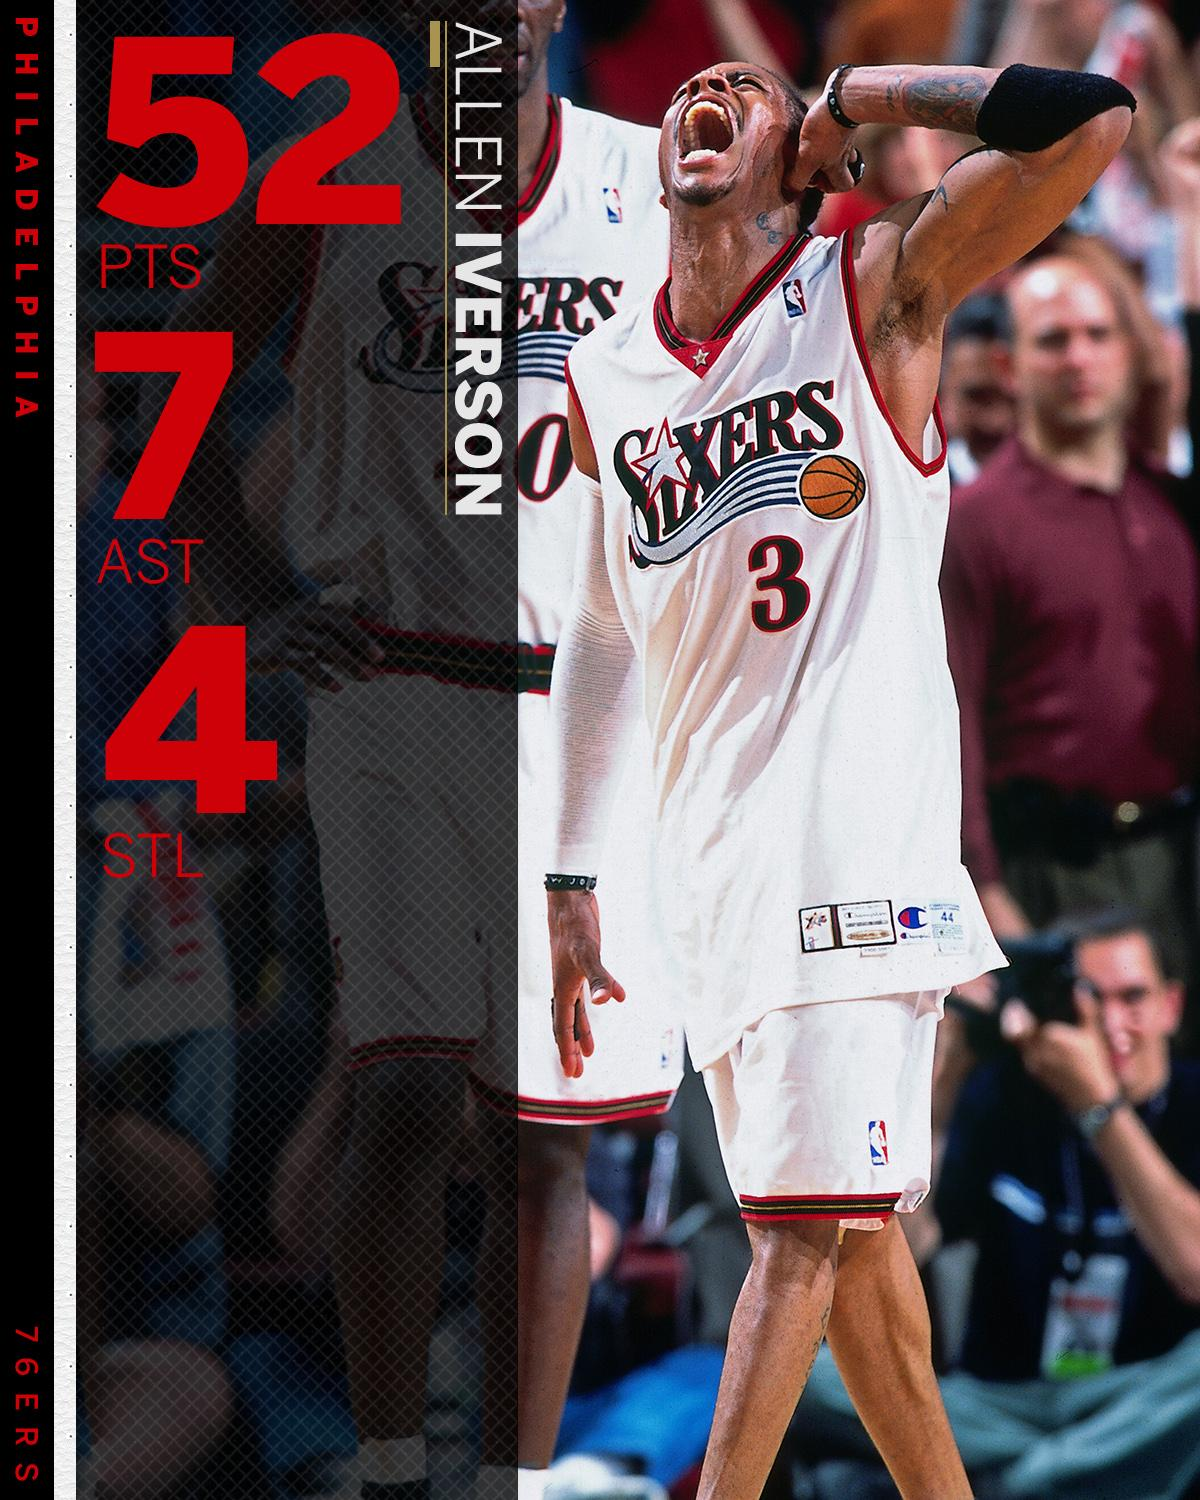 17 years ago today, The Answer dropped 52 points on the Vince Carter Raptors. https://t.co/eGbGfT0Q7D